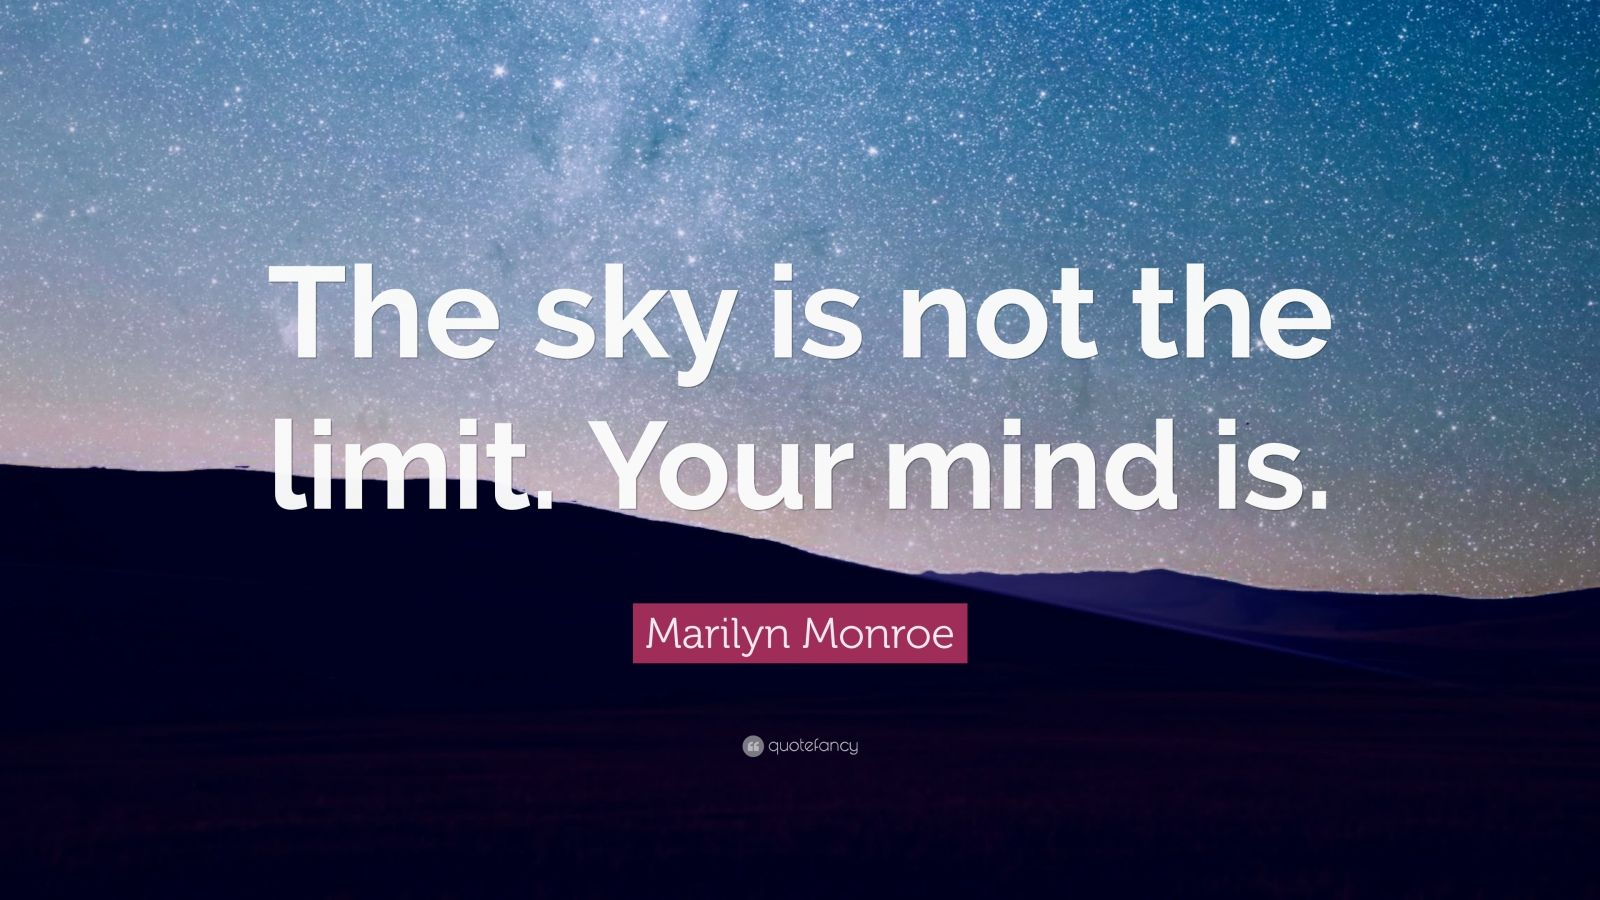 marilyn monroe quote the sky is not the limit your mind is 12 wallpapers quotefancy. Black Bedroom Furniture Sets. Home Design Ideas